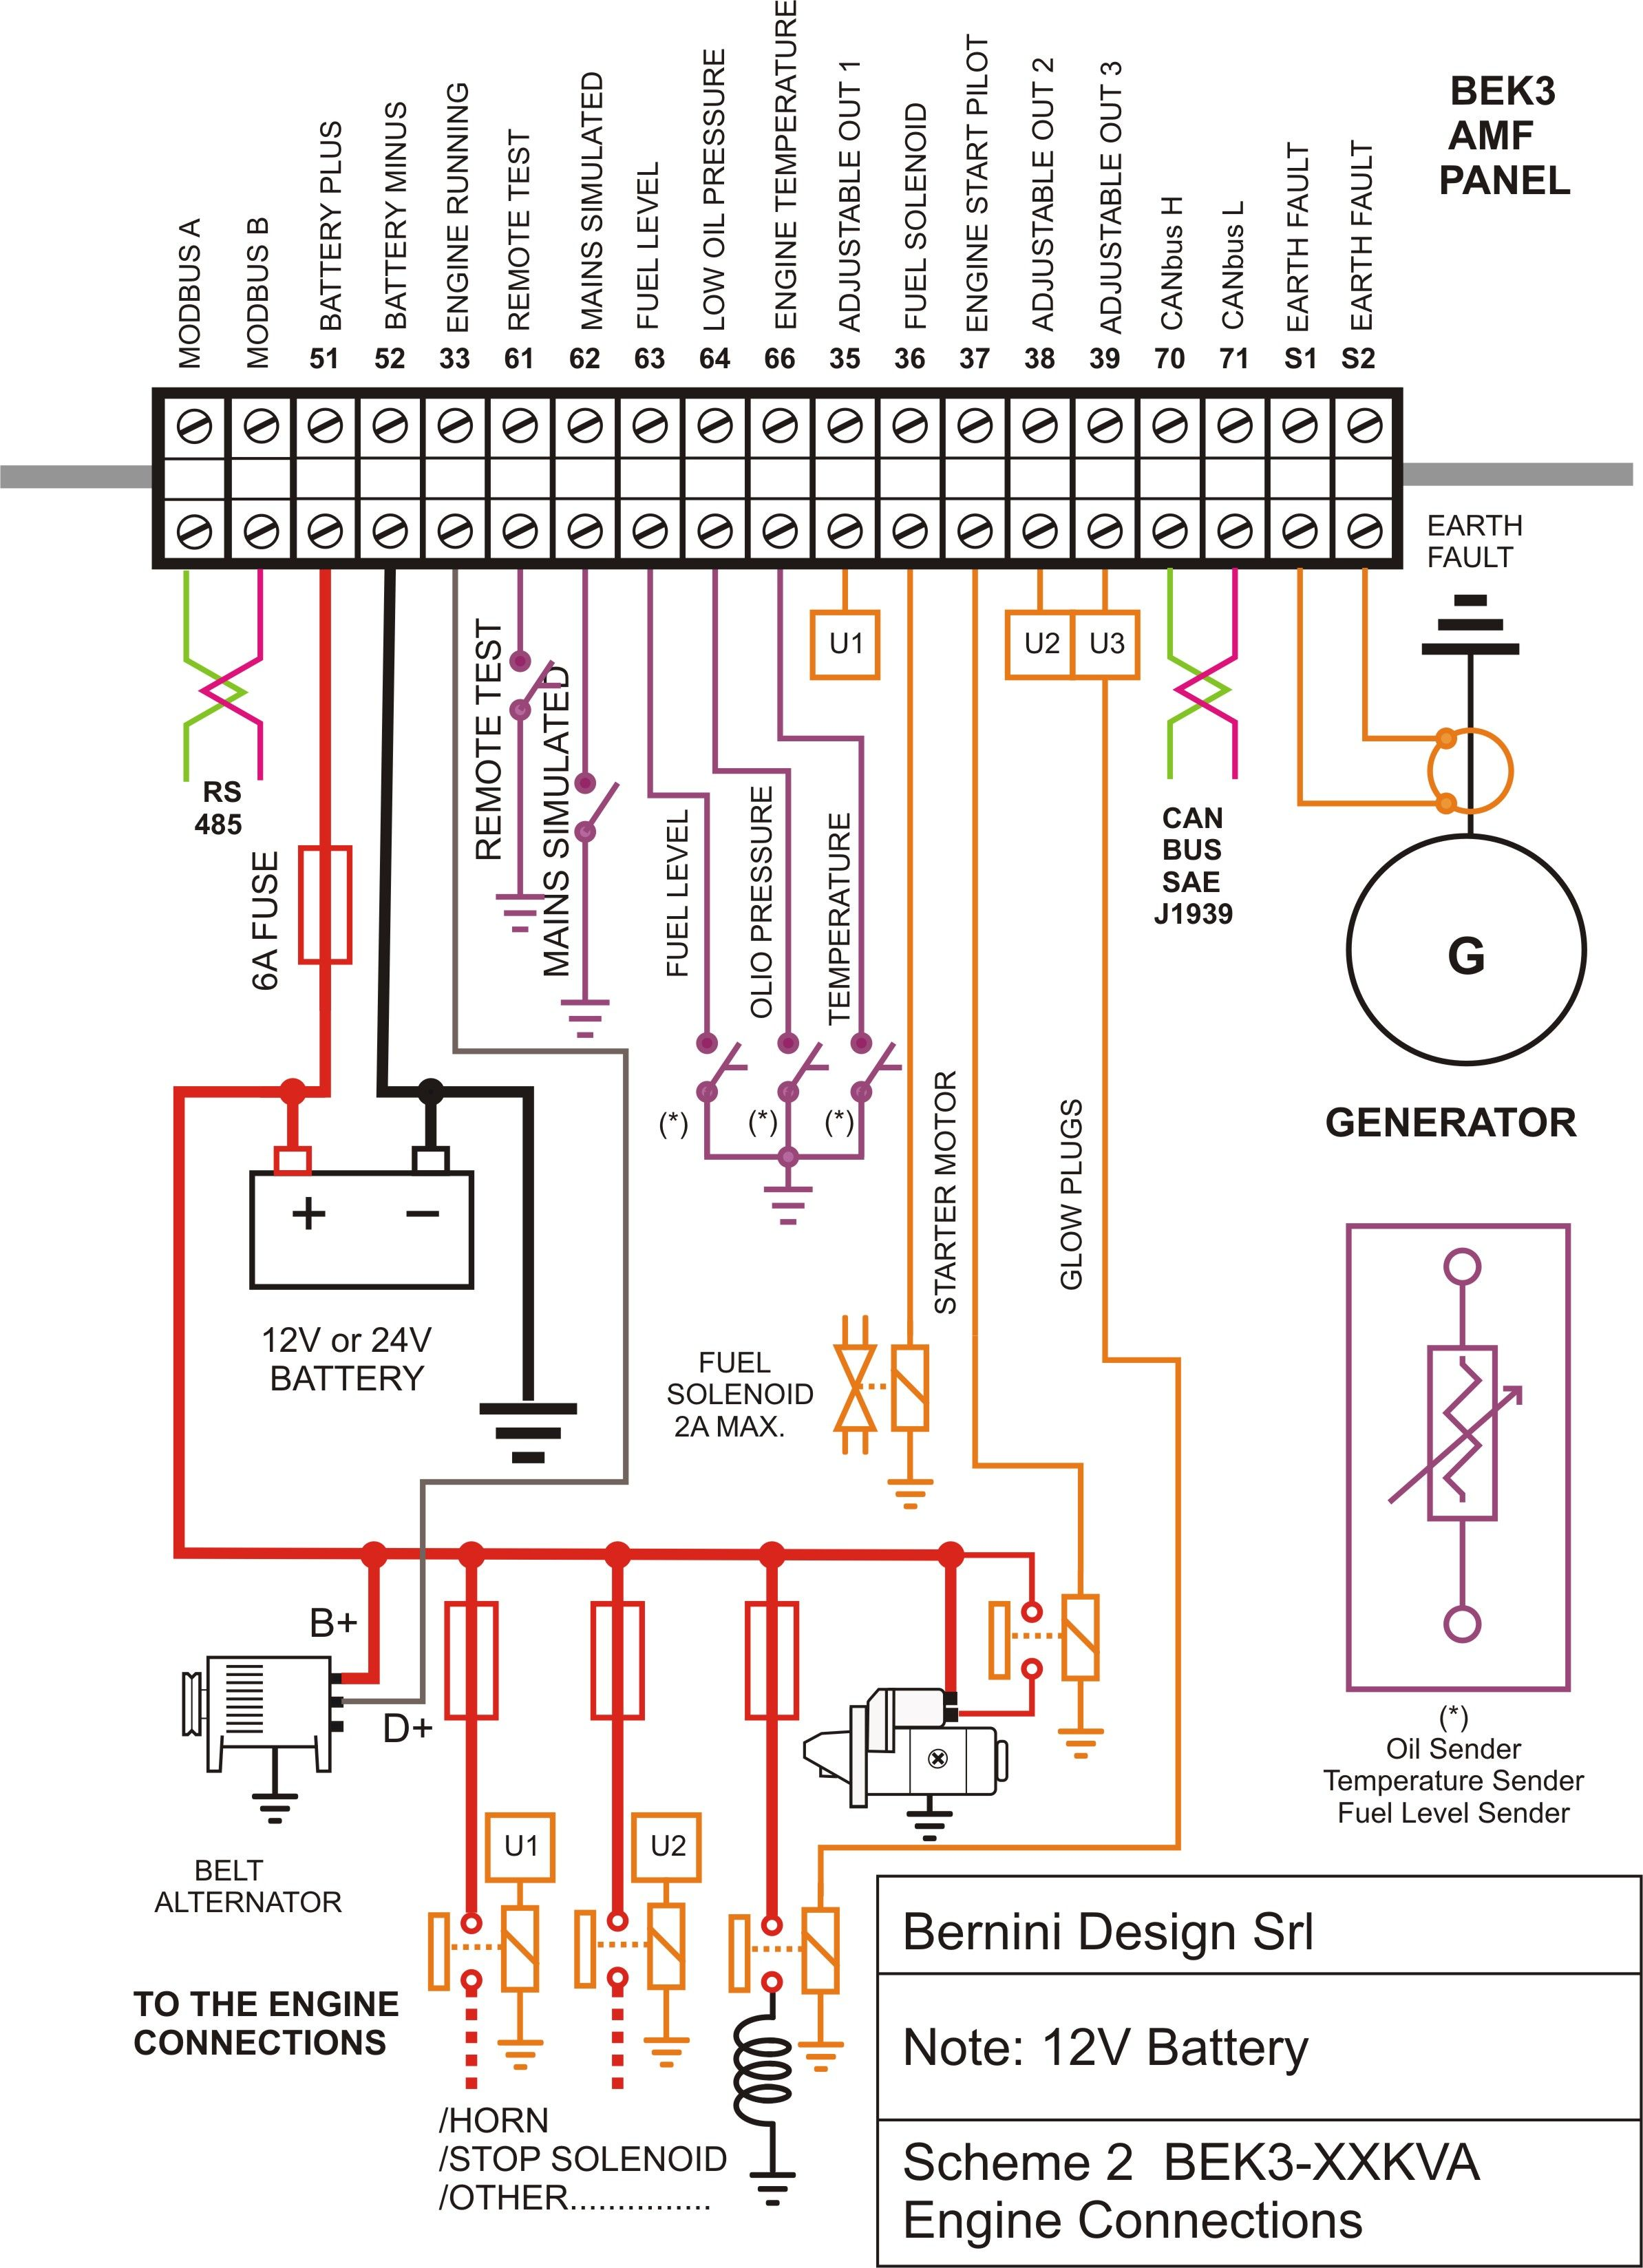 Diesel Generator Control Panel Wiring Diagram Engine Connections. Diesel Generator Control Panel Wiring Diagram Engine Connections. Wiring. Main Generator Breaker Box Wiring Diagram At Scoala.co